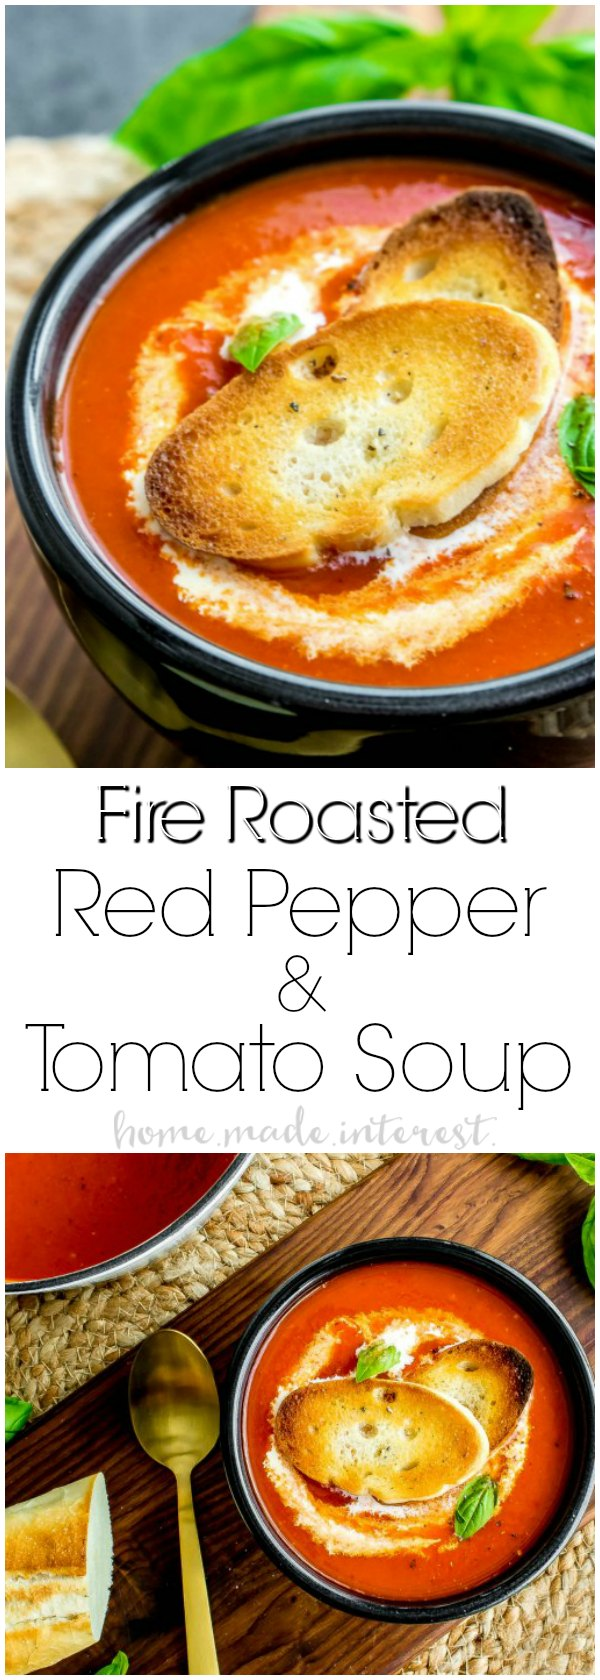 Fire Roasted Red Pepper Soup is a smoky tomato and red pepper winter soup recipe that is best served with a drizzle of cream and a crusty piece of bread or a grilled cheese sandwich! This easy soup recipe is the ultimate winter comfort food. It's a combination of tomato soup and the smoky flavor of roasted red peppers.